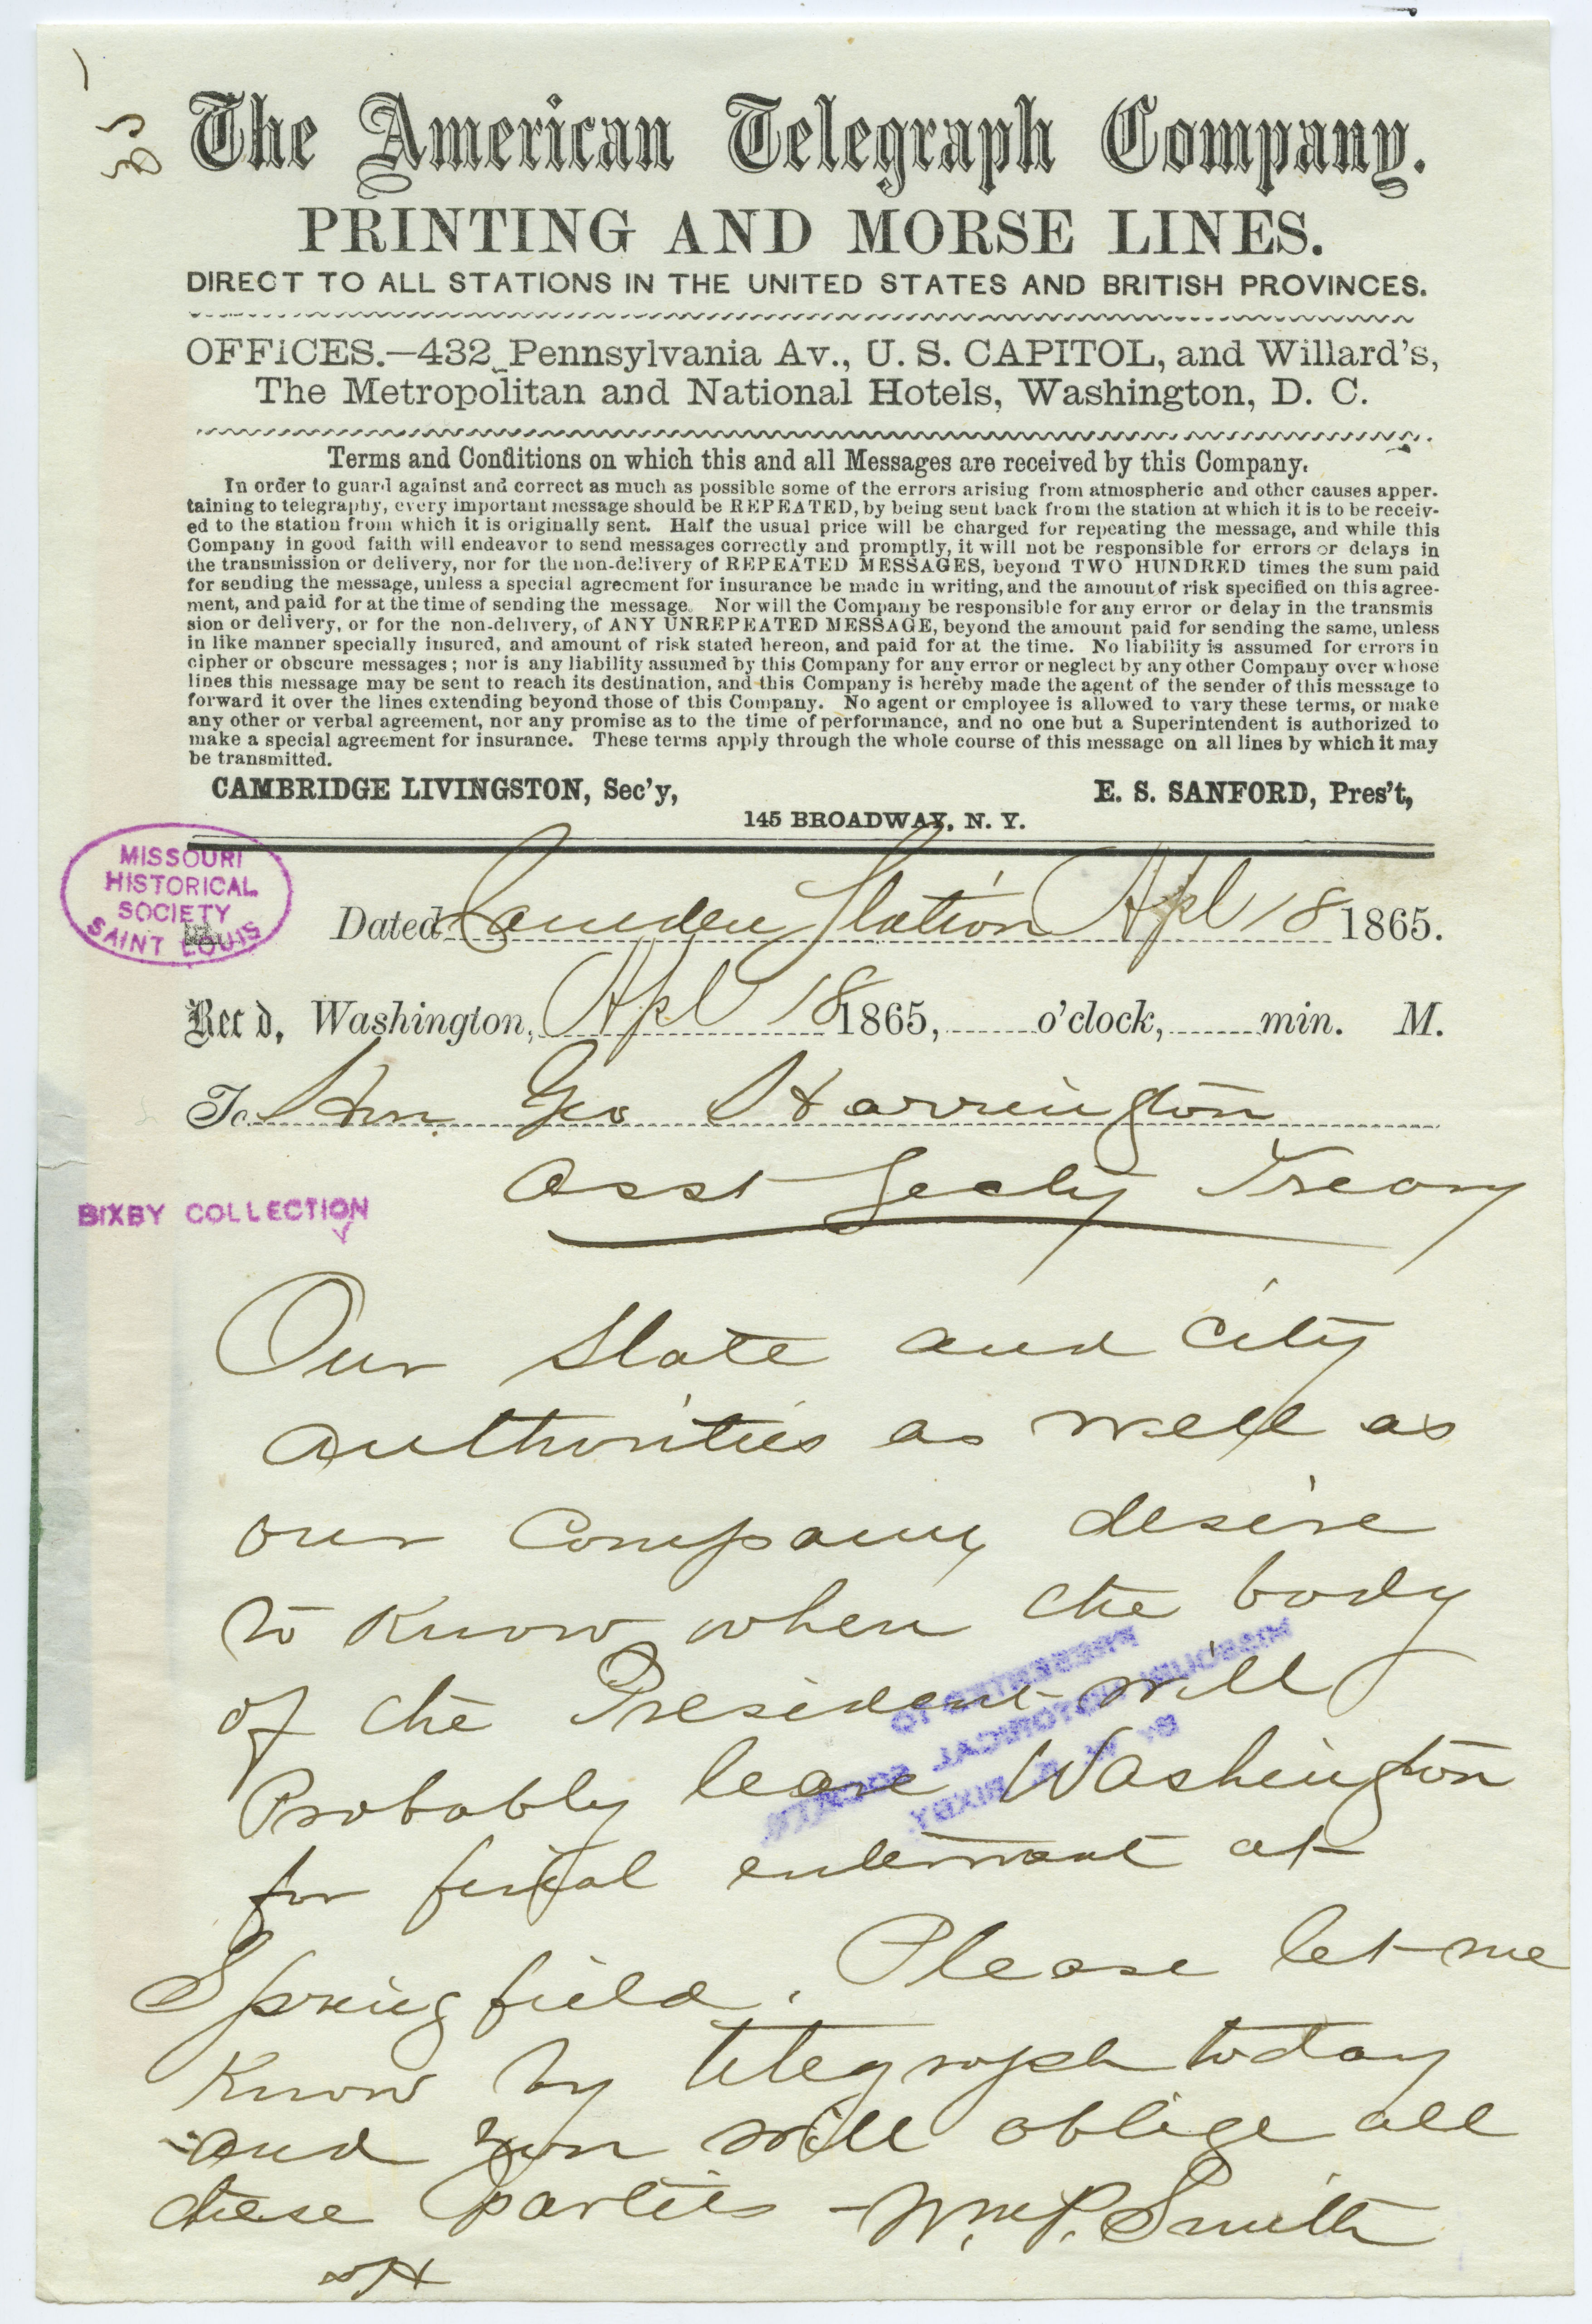 American Telegraph Company telegram of Wm. P. Smith [William P. Smith], Camden Station, to Hon. Geo. Harrington [George Harrington], Asst. Secty. Treasy., April 18, 1865